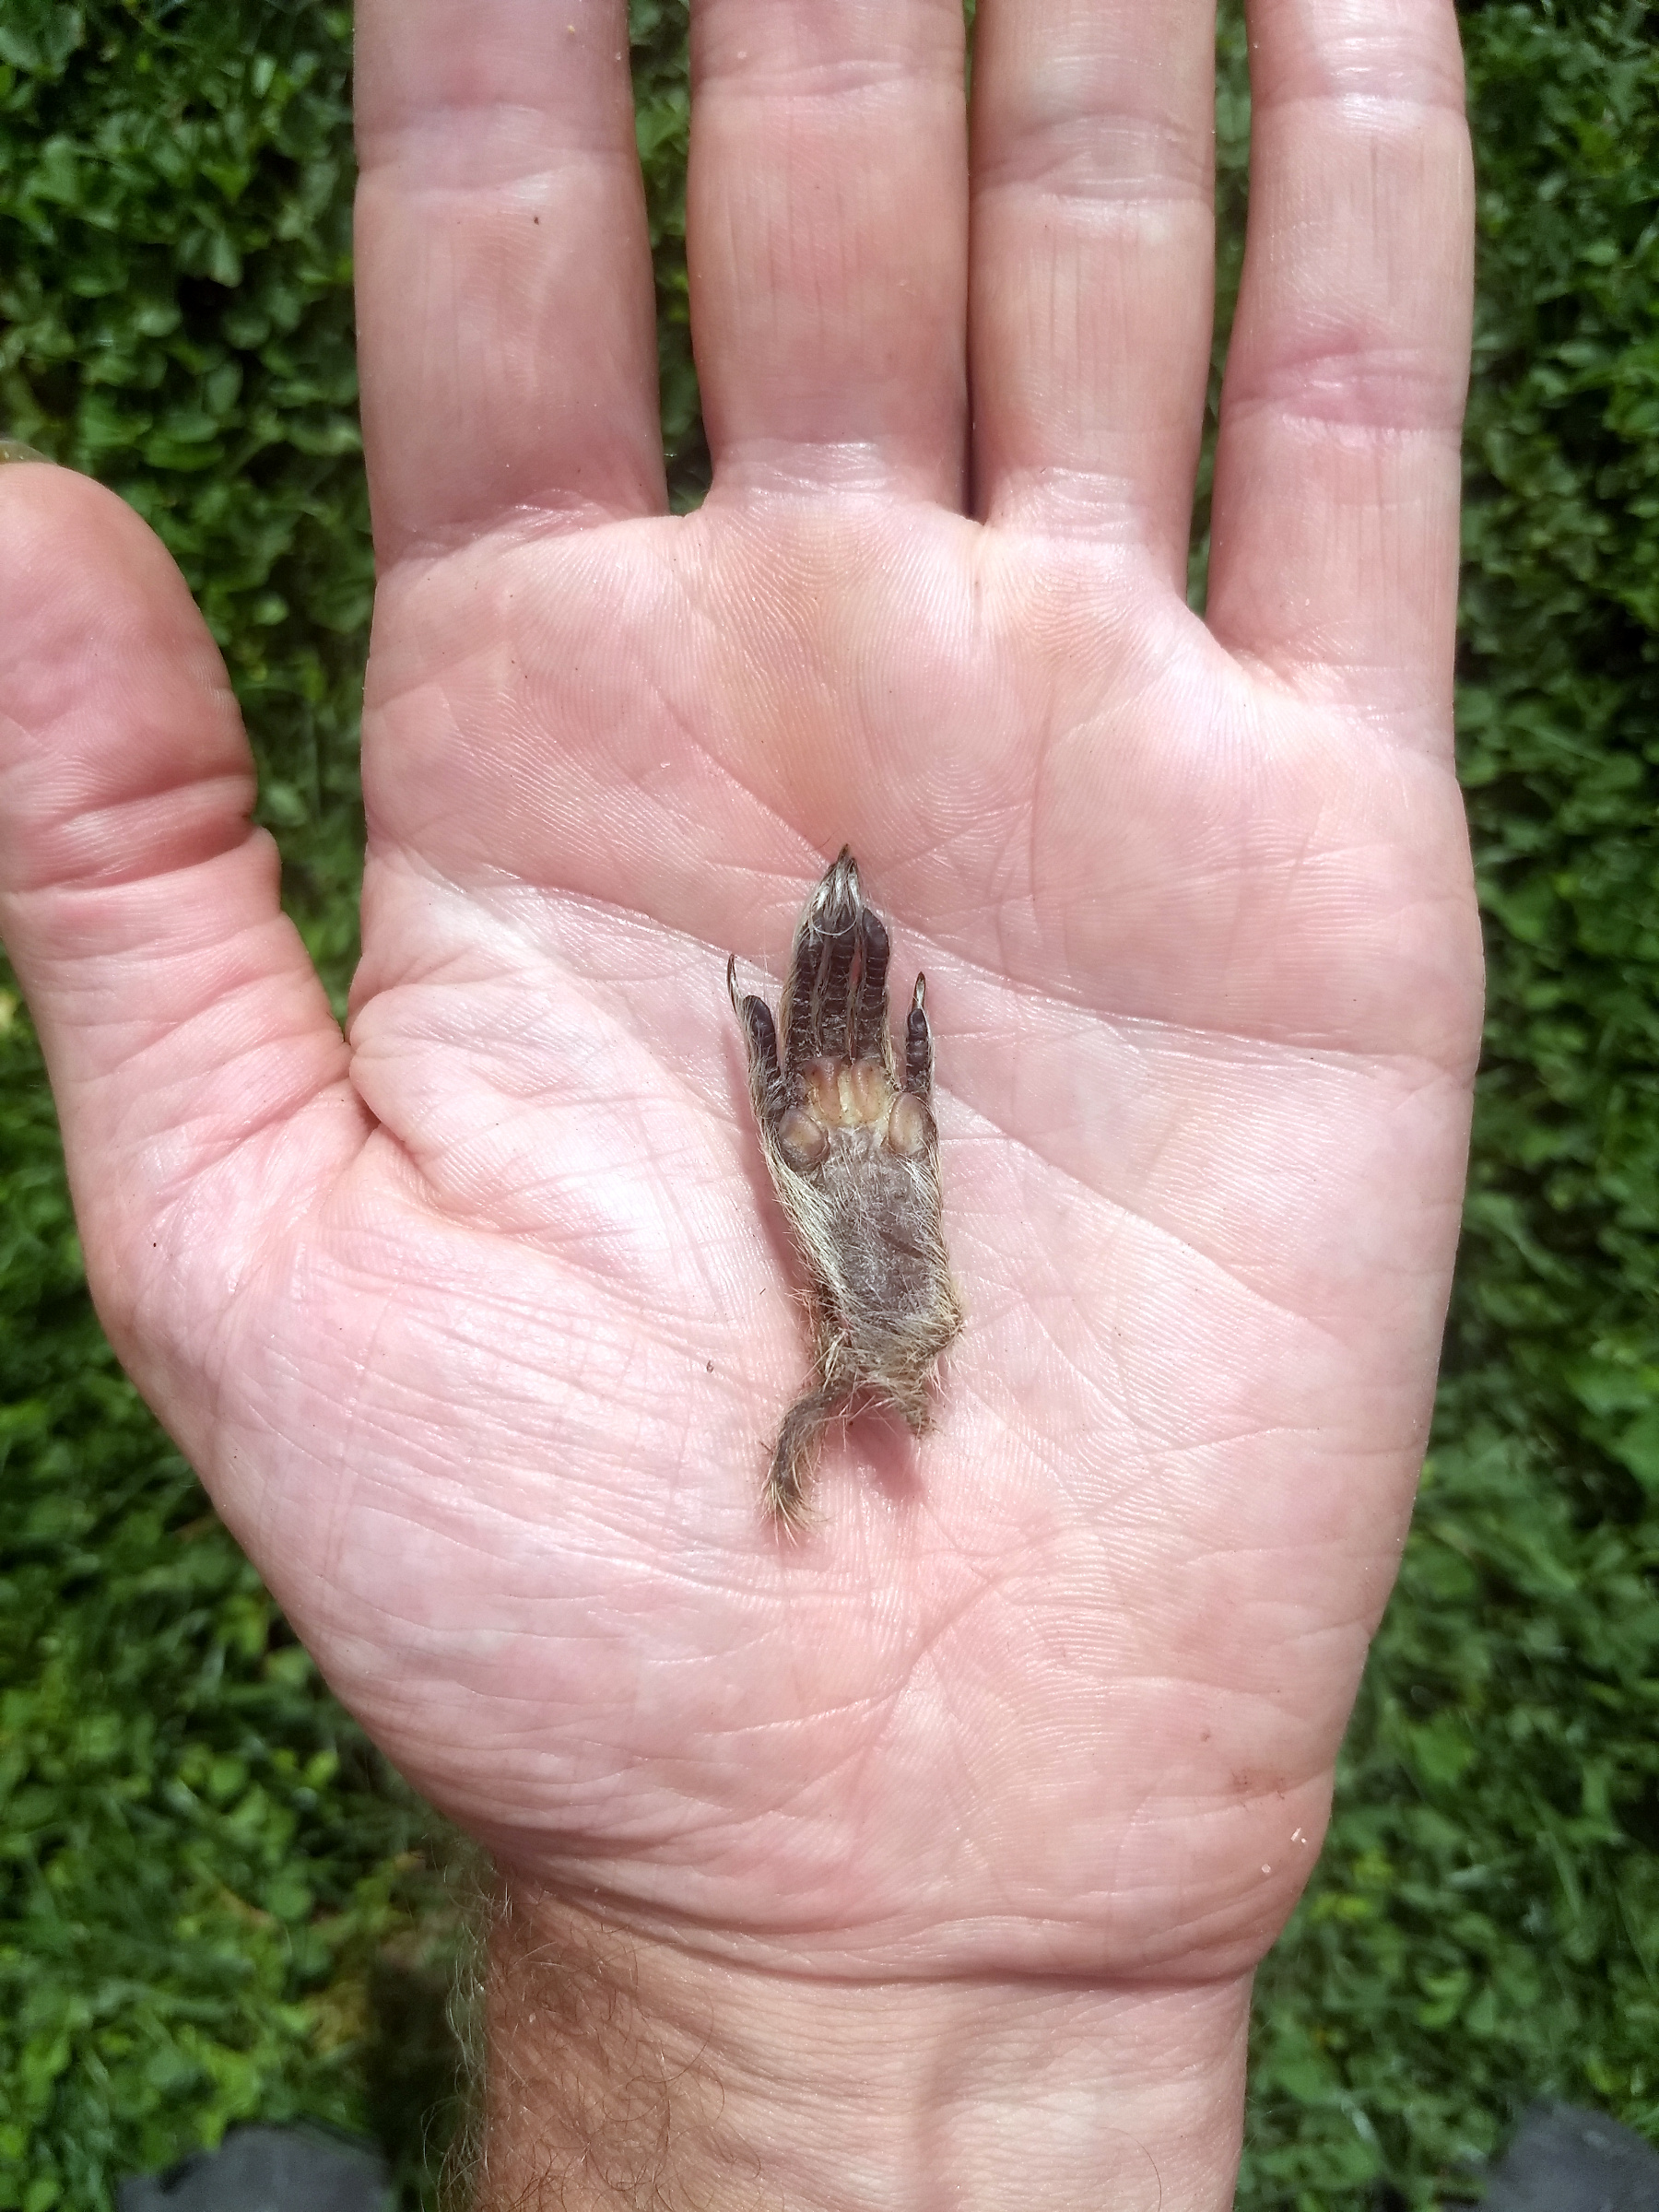 Squirrel's paw in my hand